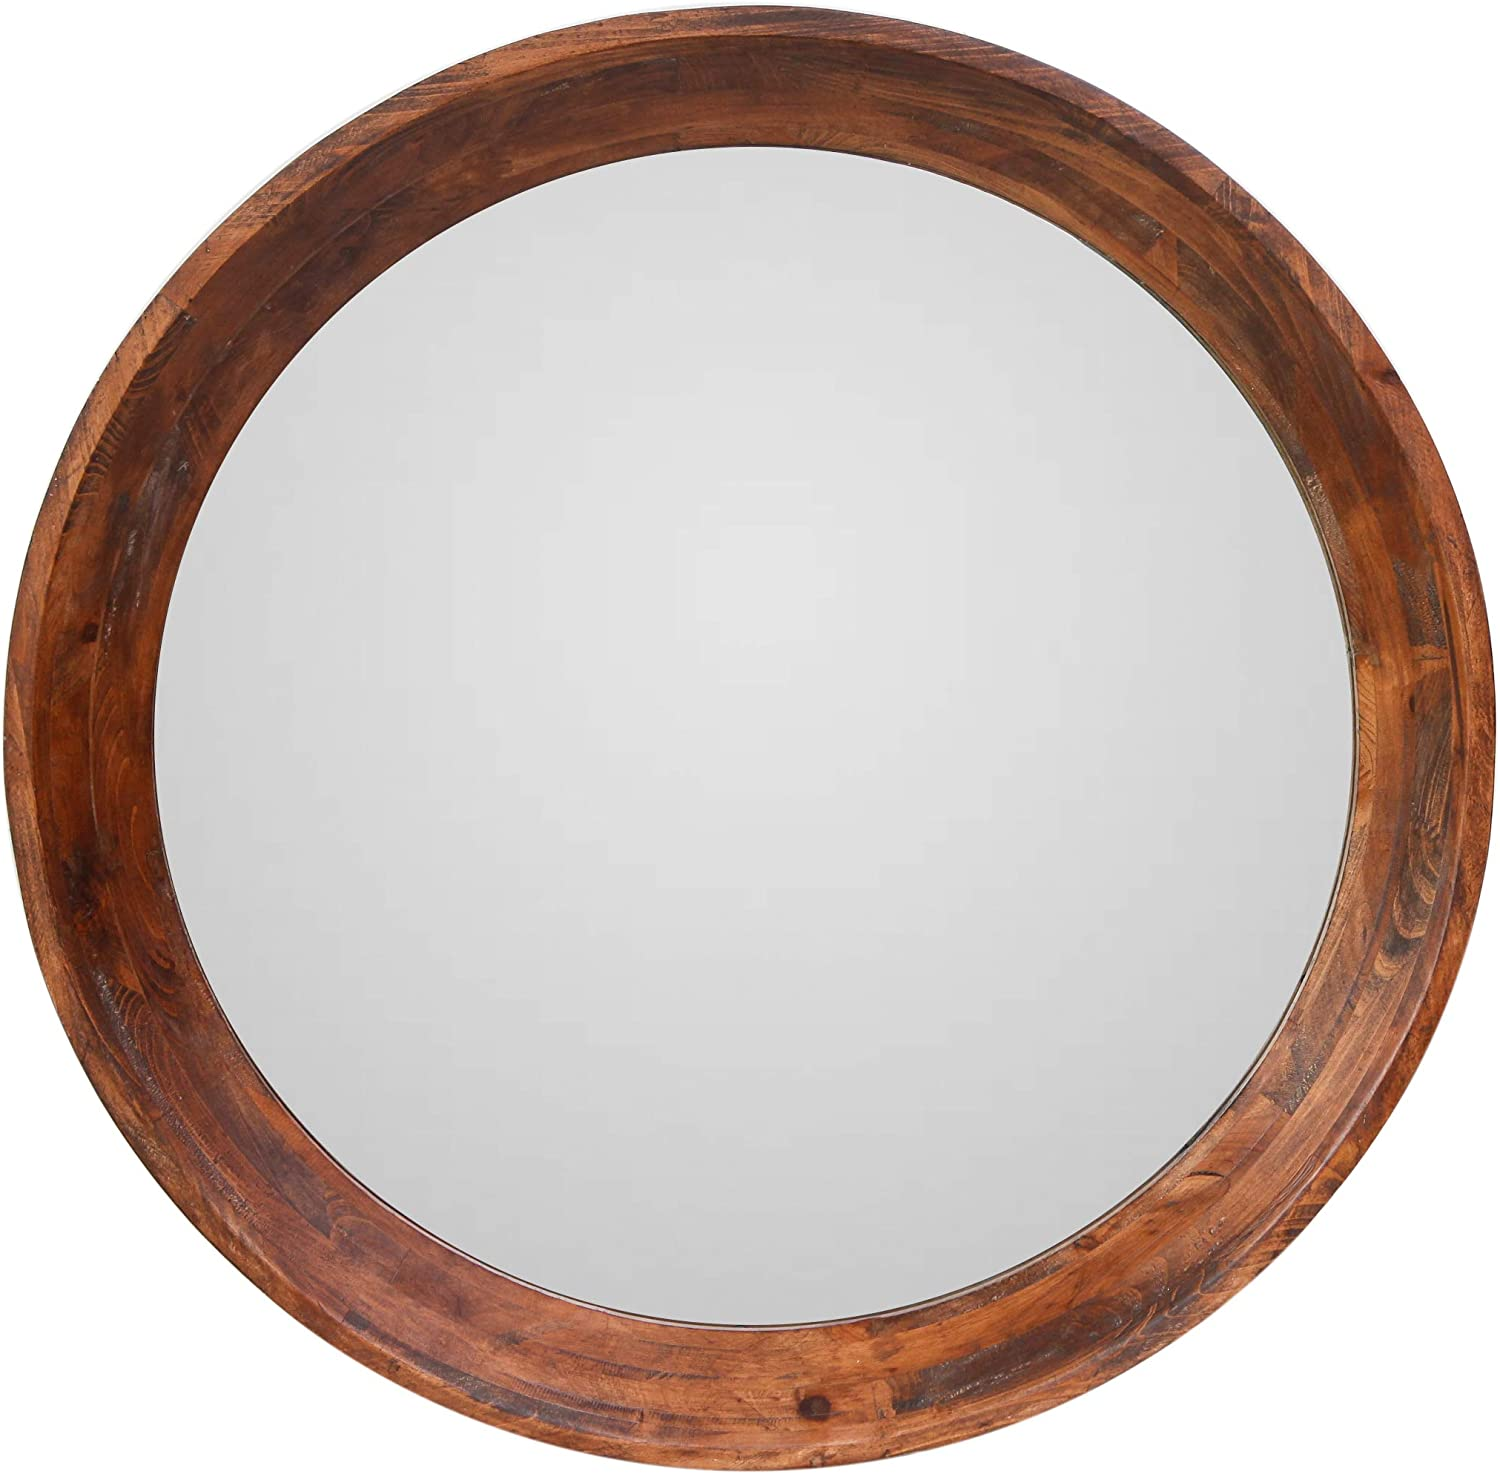 NIKKY HOME Large Circle Wall Mirror 30 Inch Vintage Decorative Wooden Round Vanity Wall Mounted Mirror for Entryways, Washrooms, Living Rooms, Bathroom - Brown